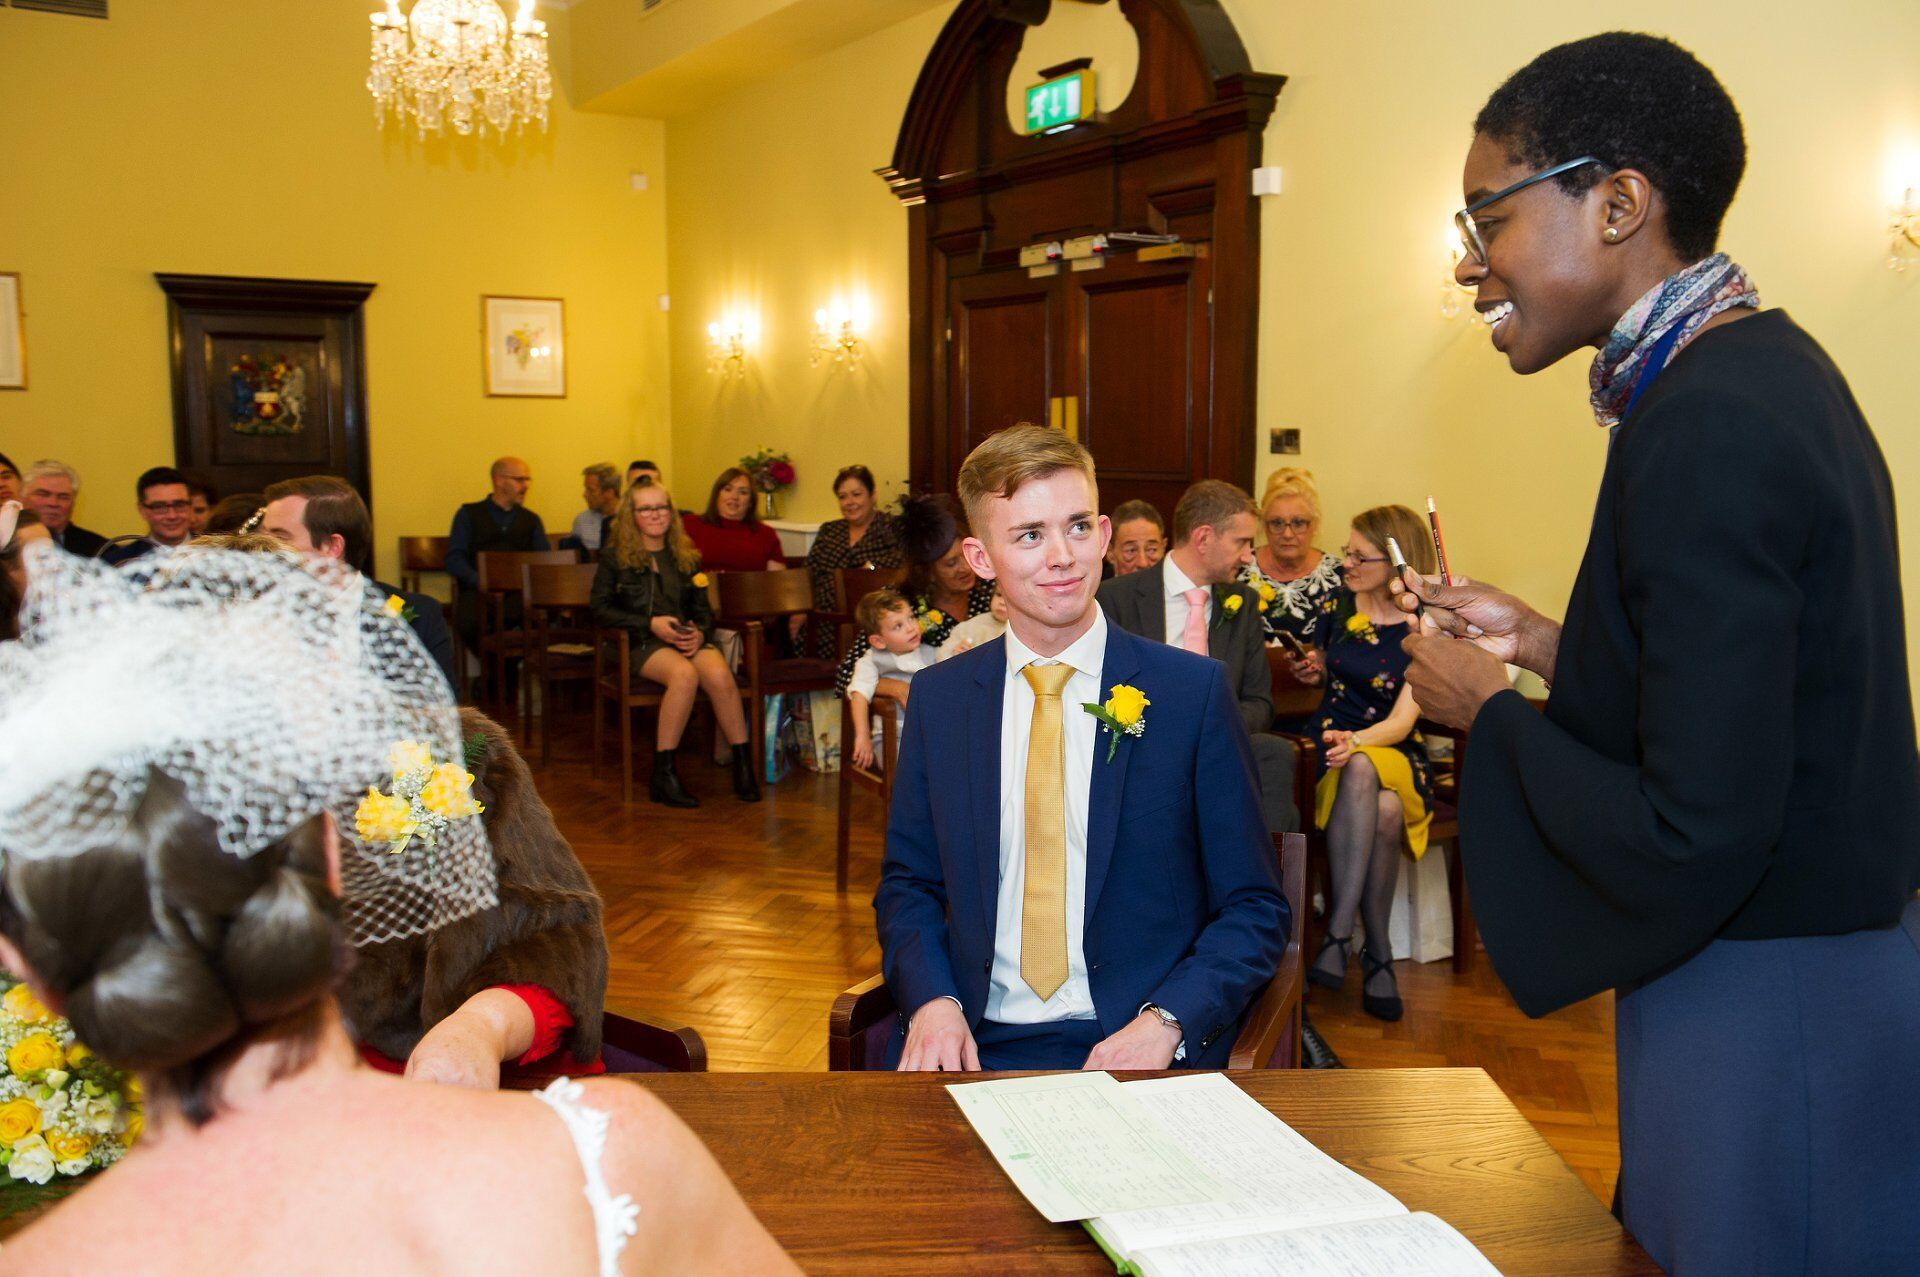 registrar and witness having a moment during a brydon room wedding ceremony